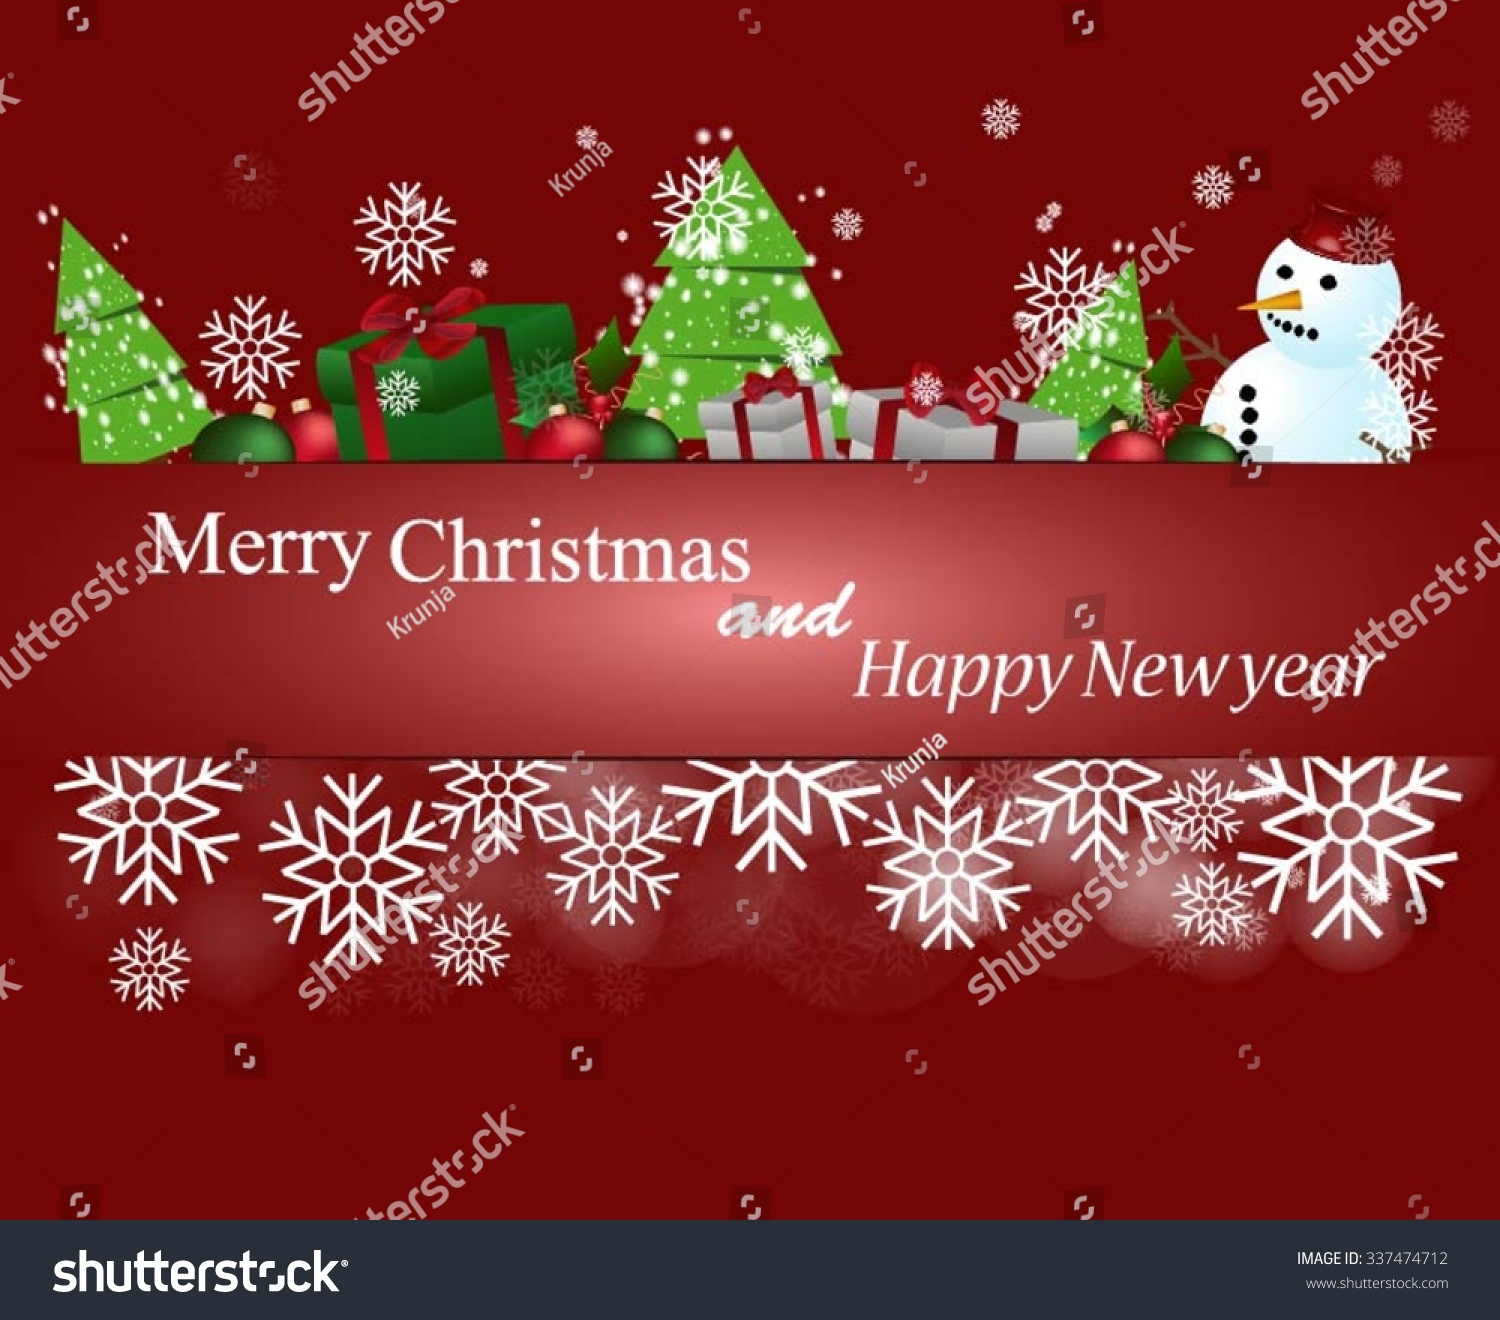 Merry christmas happy new year card stock vector royalty free merry christmas and happy new year card m4hsunfo